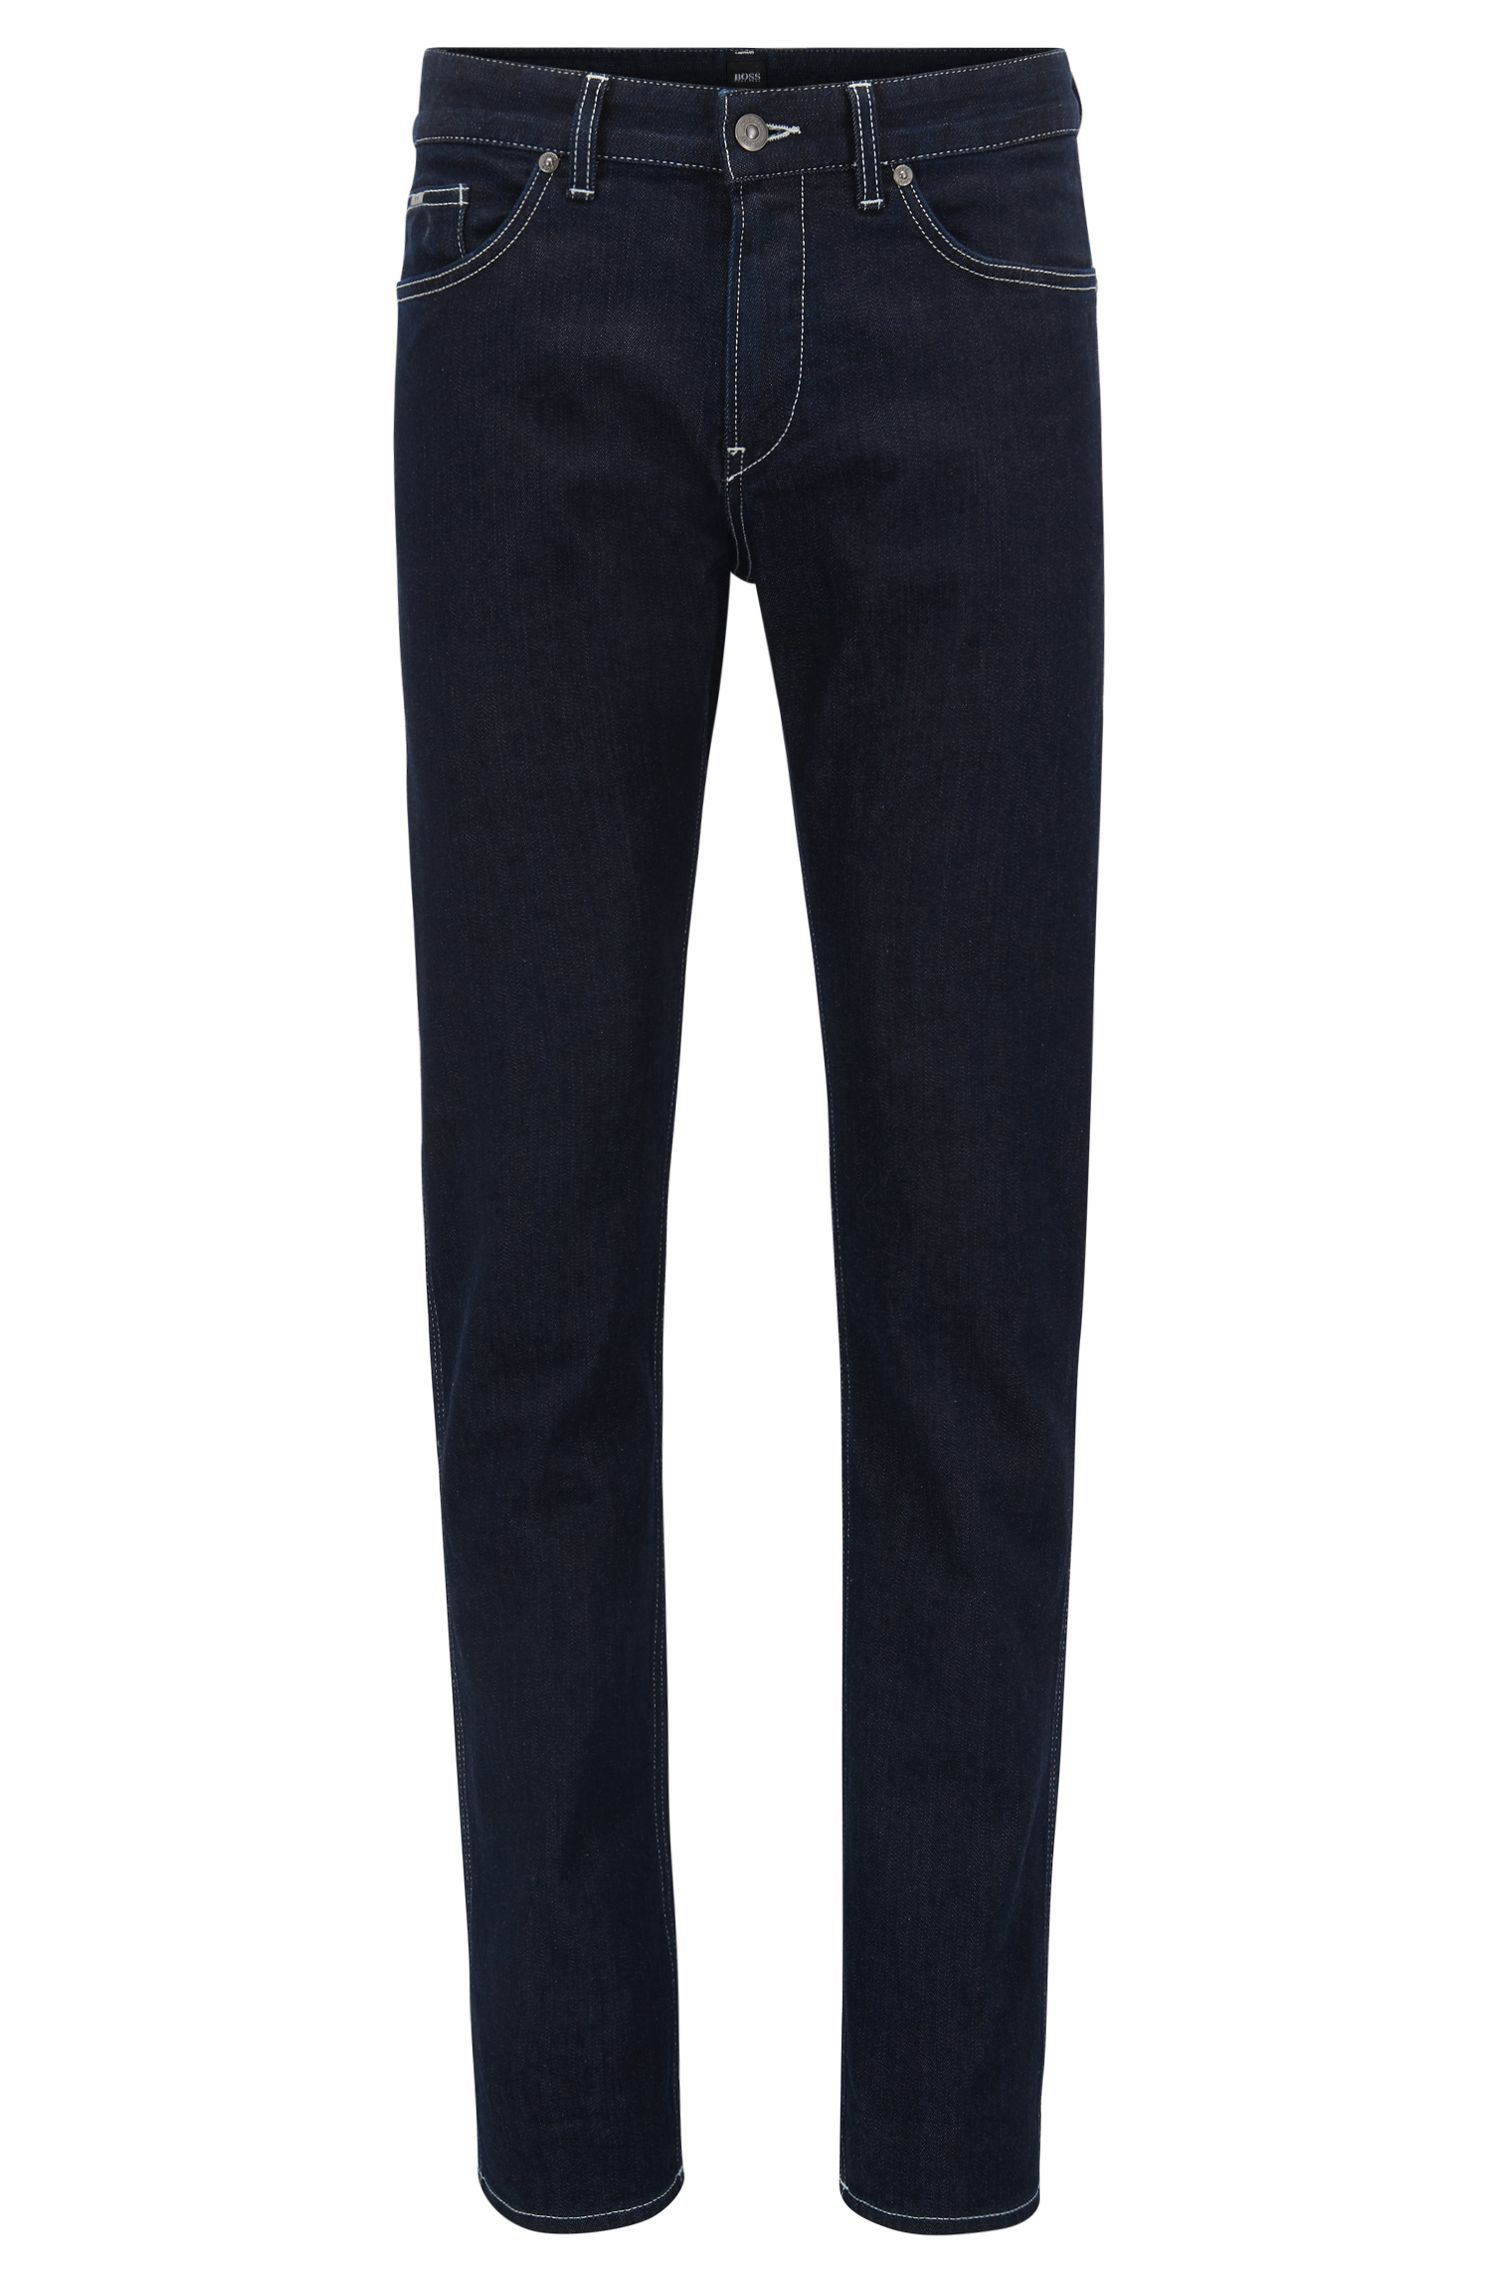 10.6 oz Stretch Cotton Jean, Slim Fit | Delaware